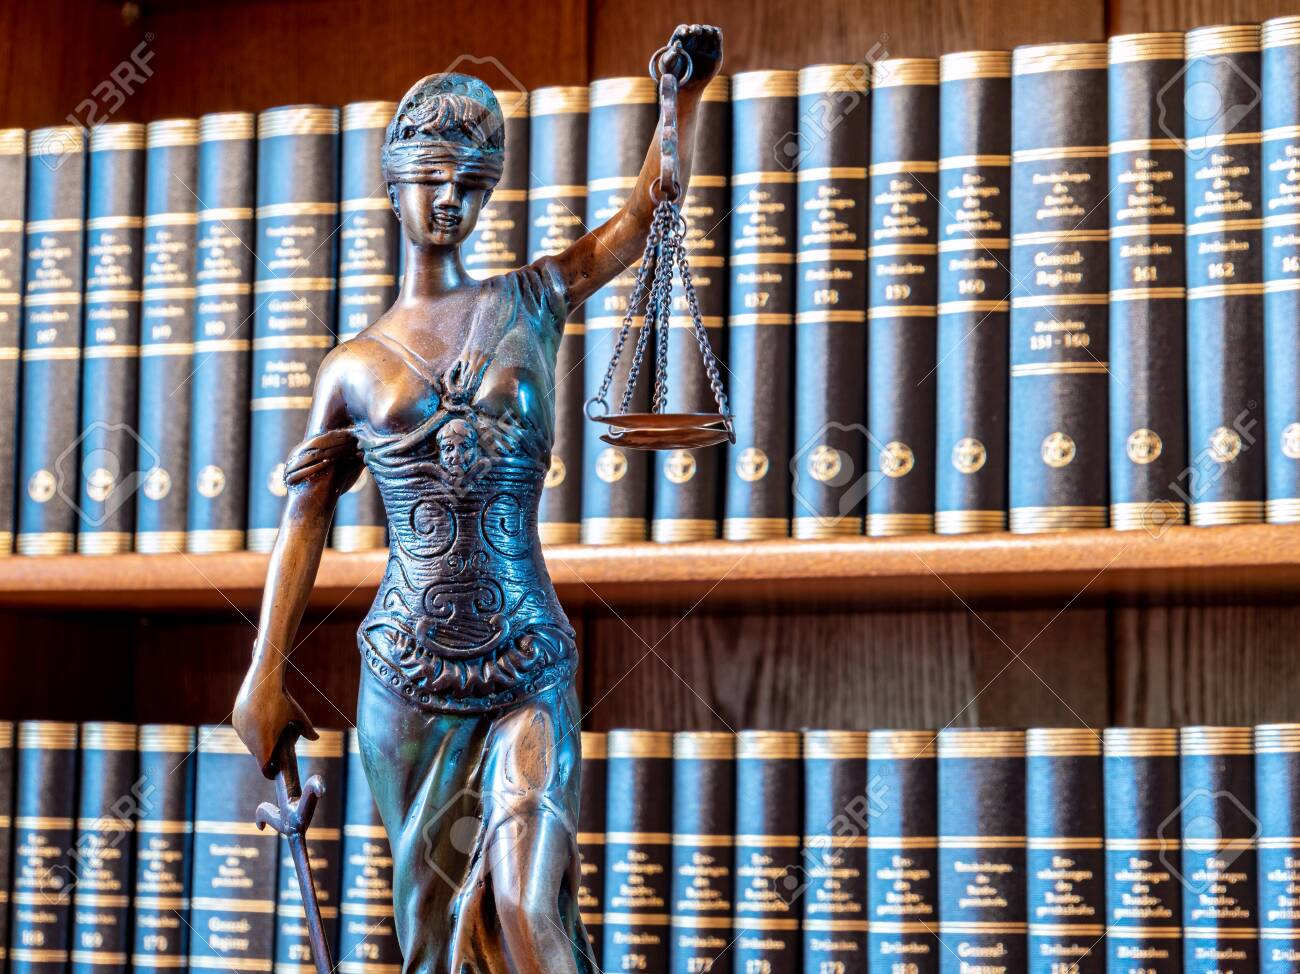 Law Figure Justice Statue In Lawyer's Office With Bookshelf Stock Photo,  Picture And Royalty Free Image. Image 133929814.